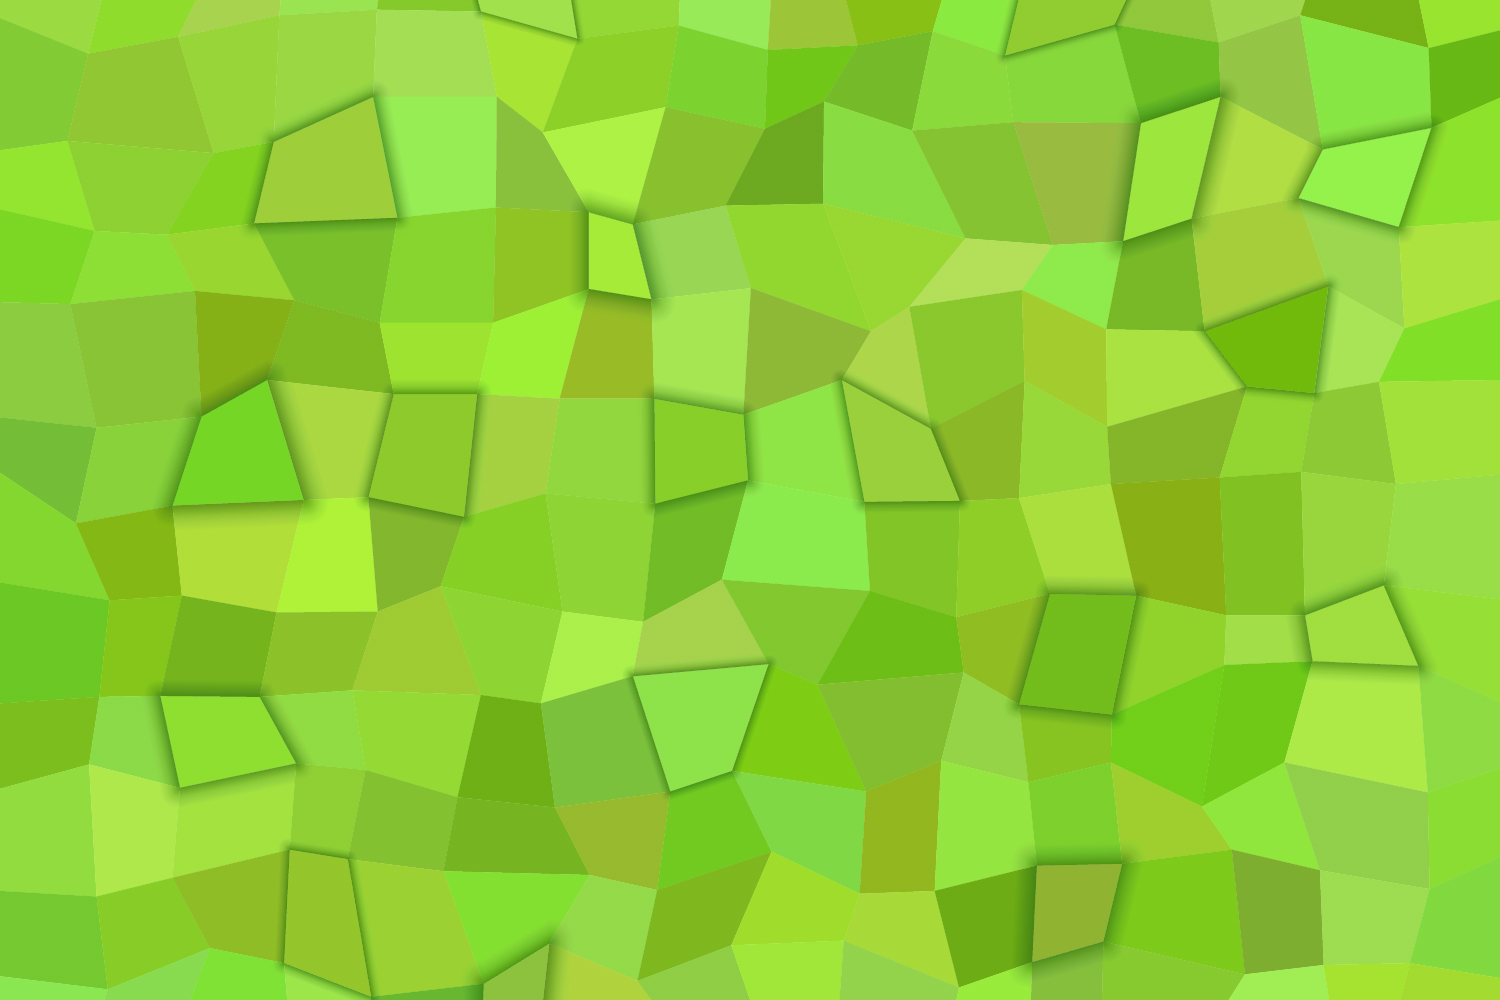 8 Green 3D Rectangle Backgrounds (AI, EPS, JPG 5000x5000) example image 2